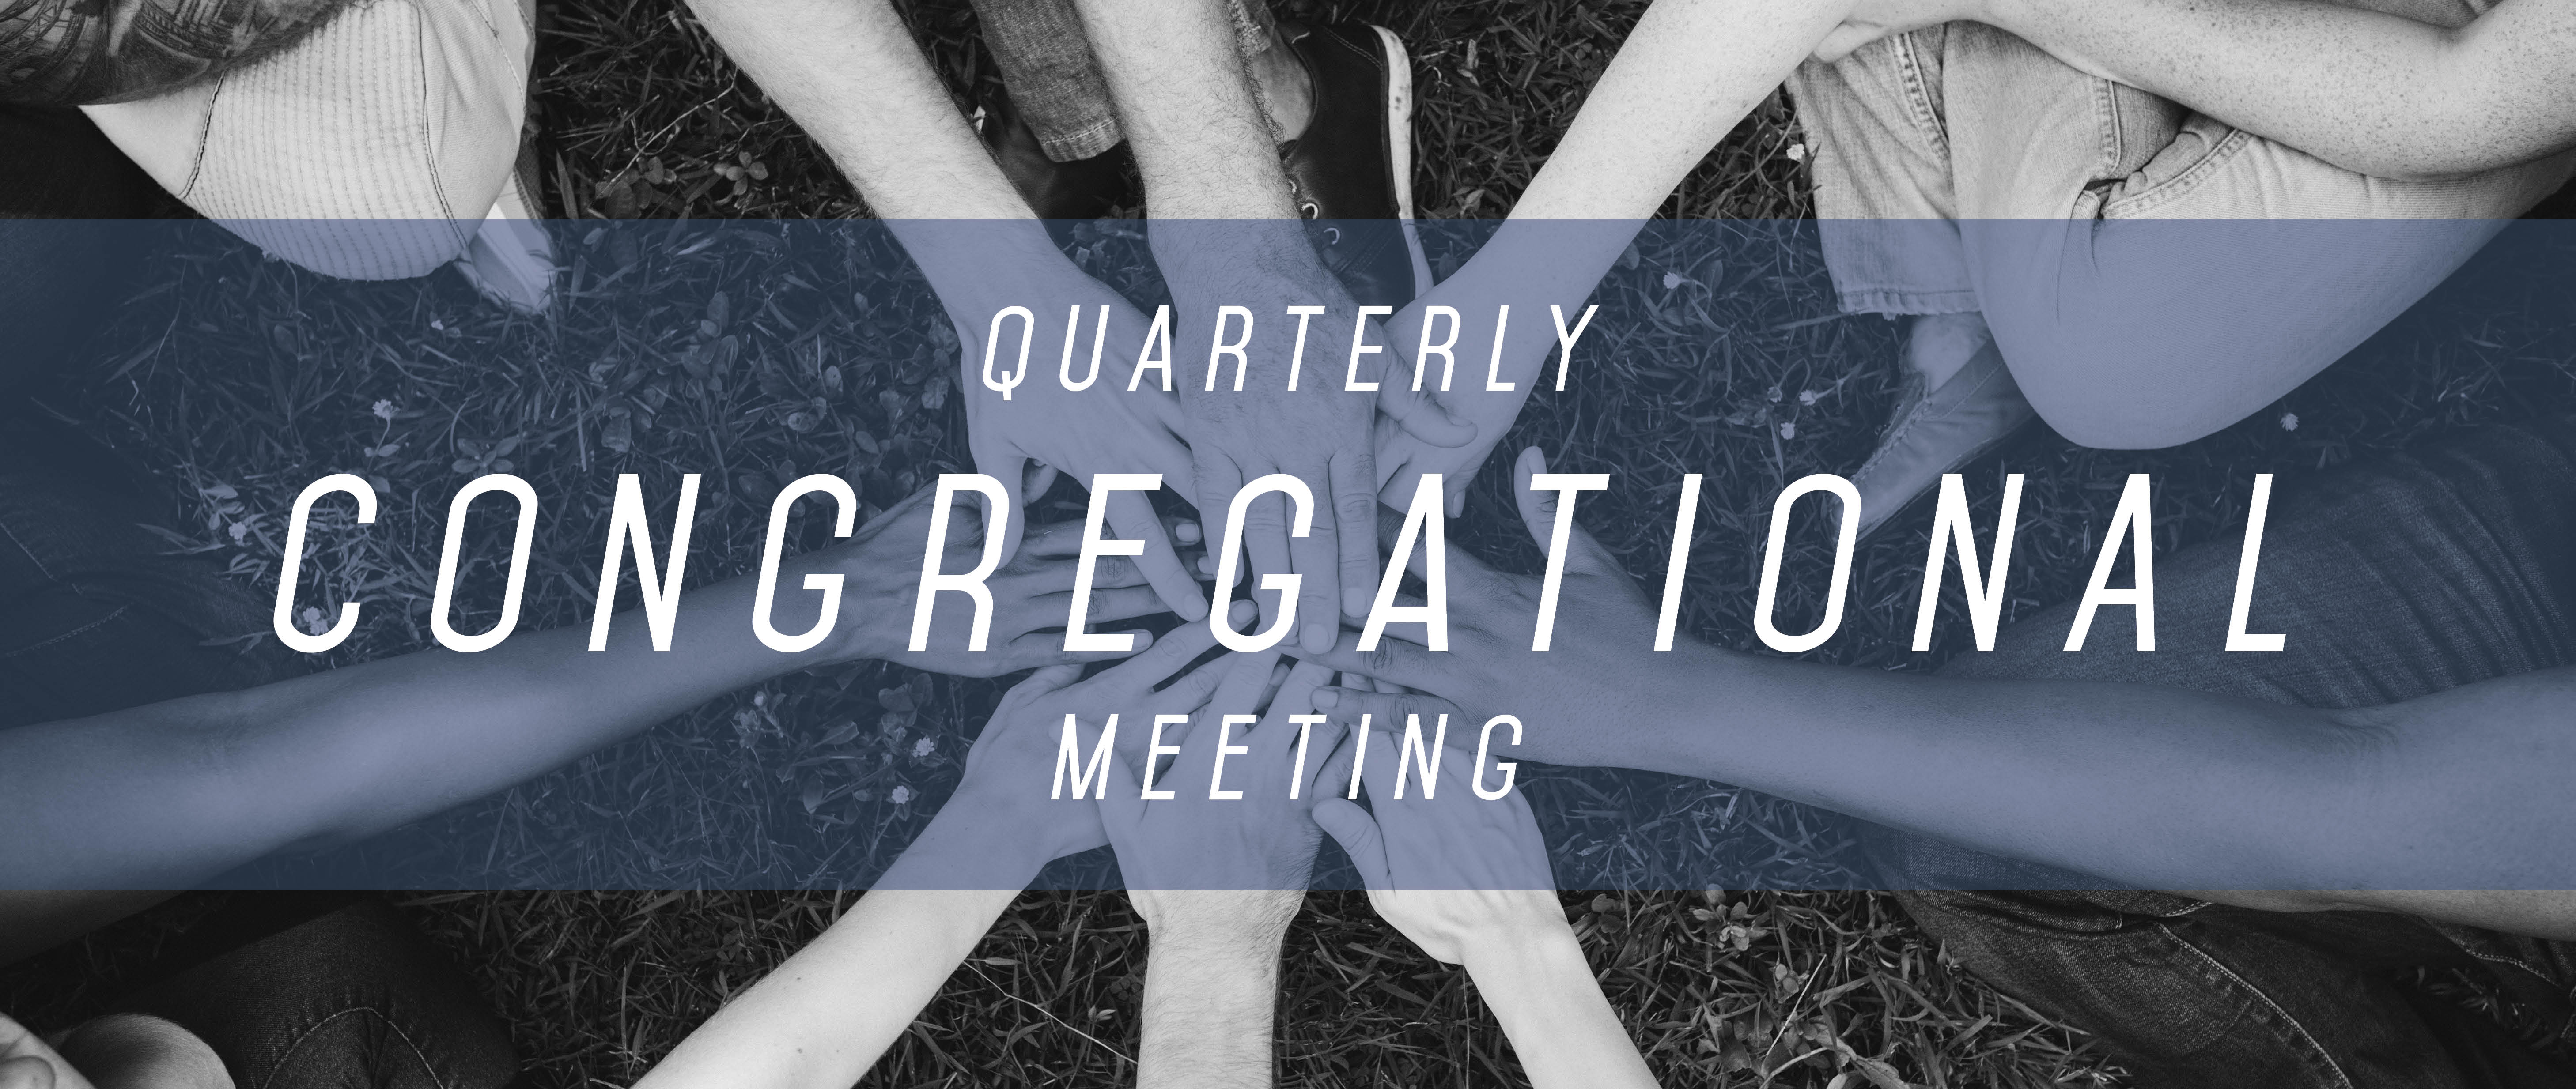 quarterly_congregational_header image